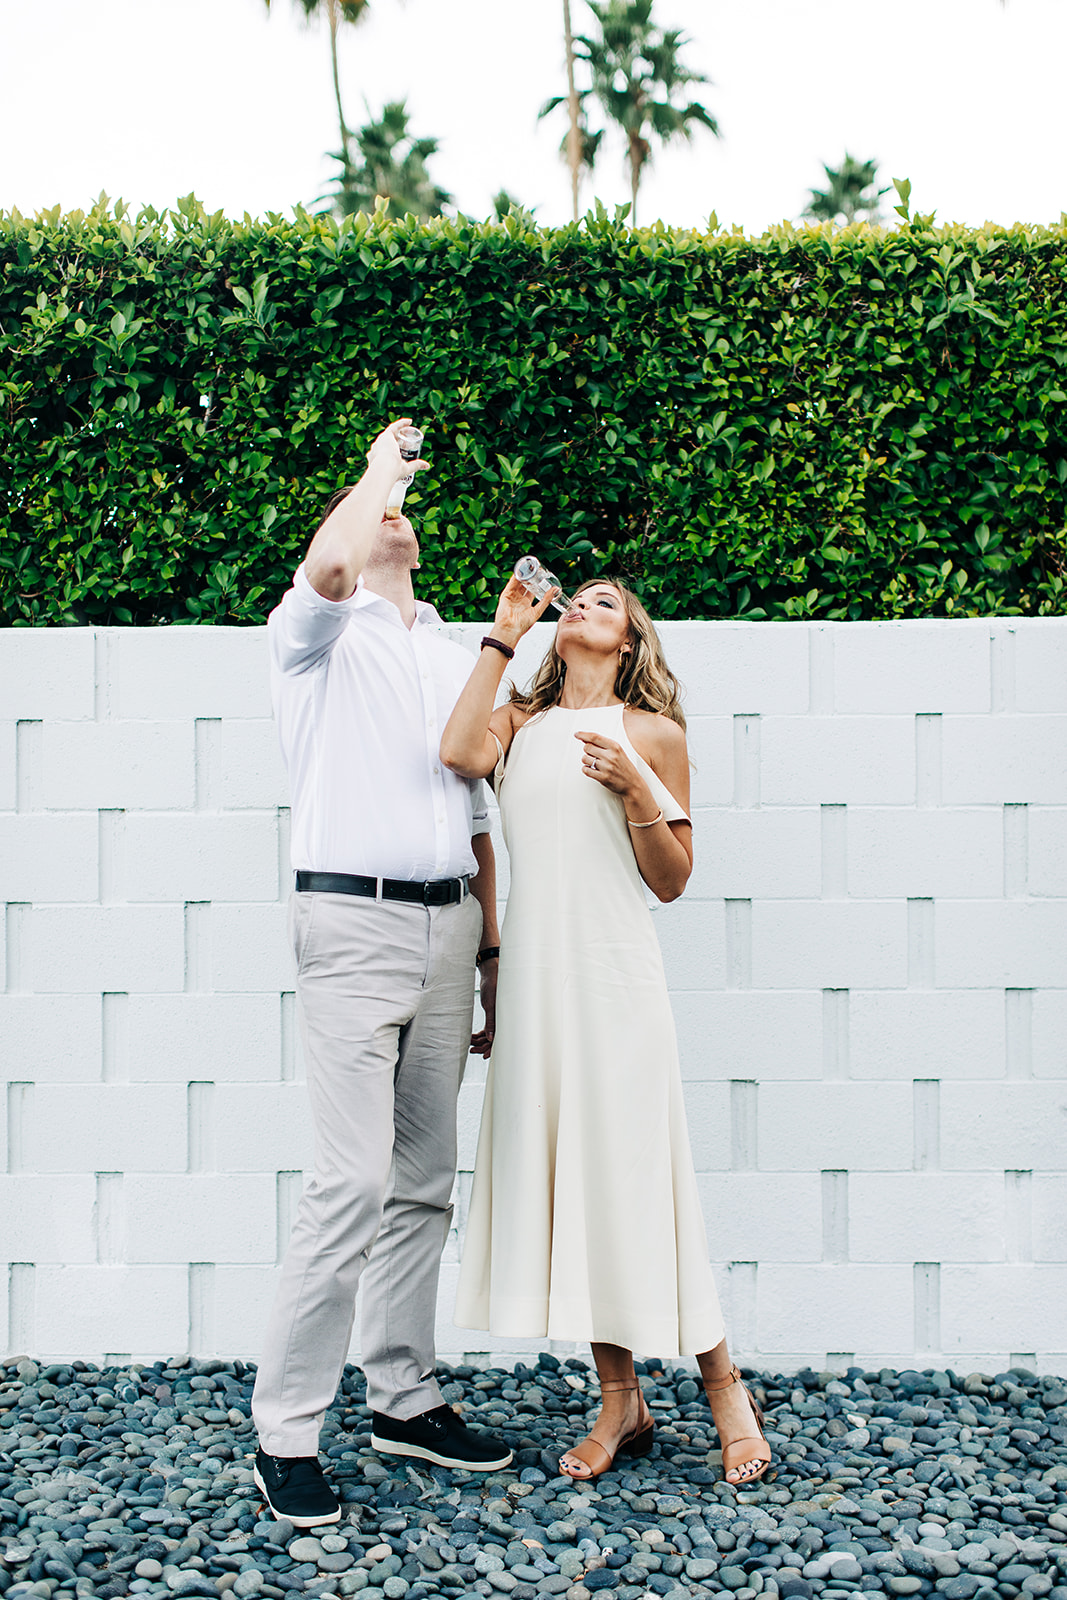 Paulina-Drew_Palm-Springs-Engagement-Photos_Clarisse-Rae_Southern-California-Wedding-Photographer-16